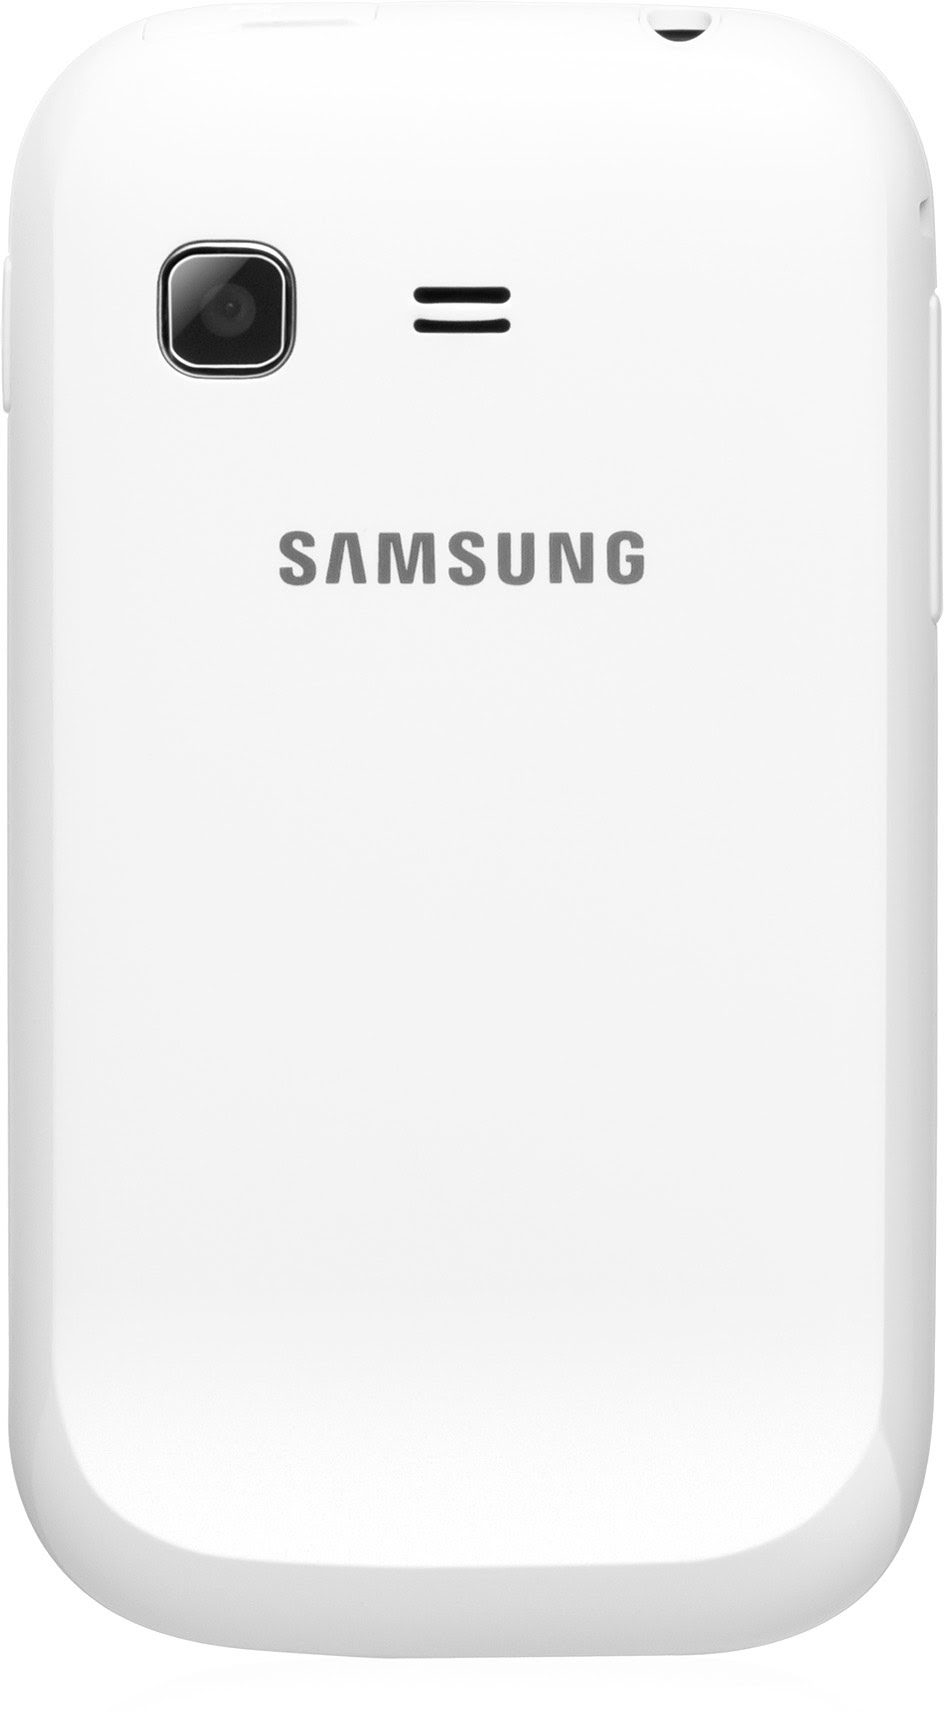 WHATSAPP FOR S5233W TÉLÉCHARGER SAMSUNG